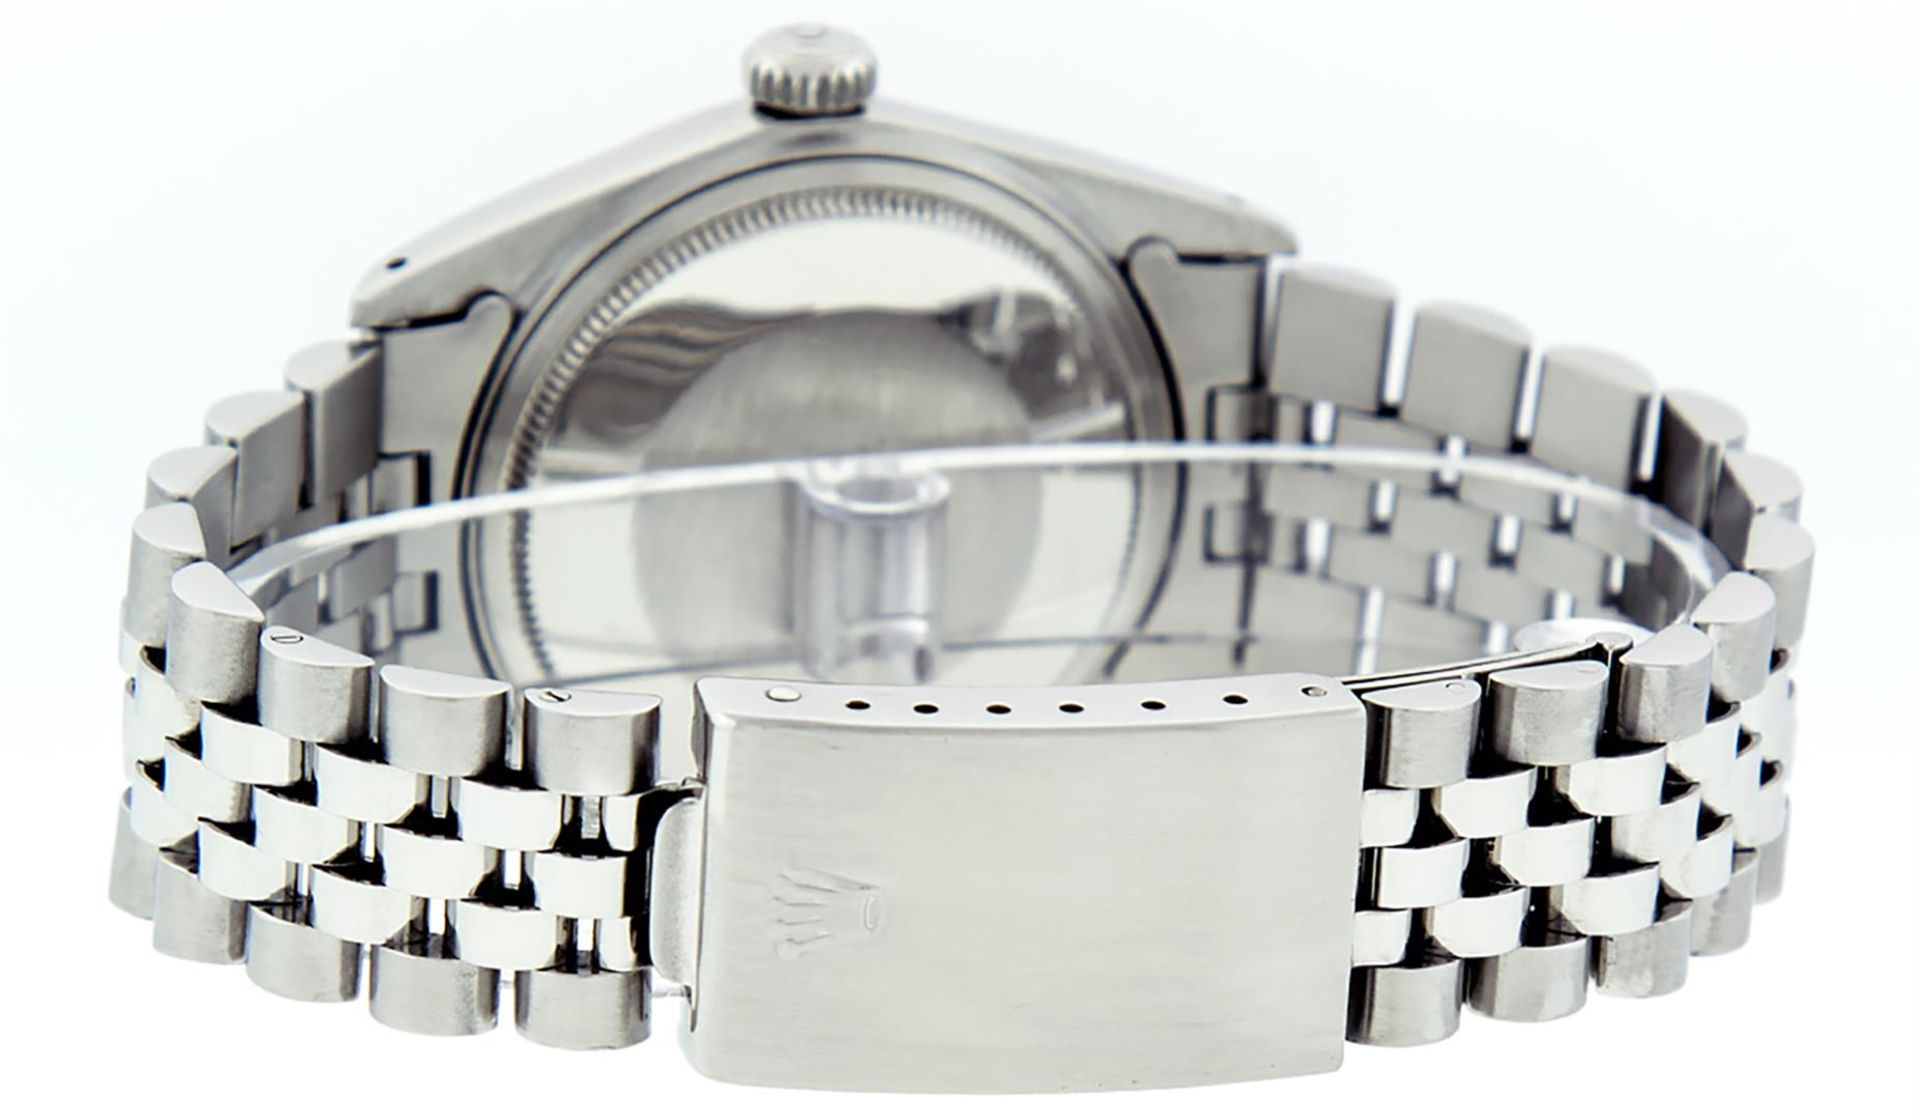 Rolex Mens Stainless Steel Mother Of Pearl Diamond & Sapphire Datejust Wristwatc - Image 5 of 8